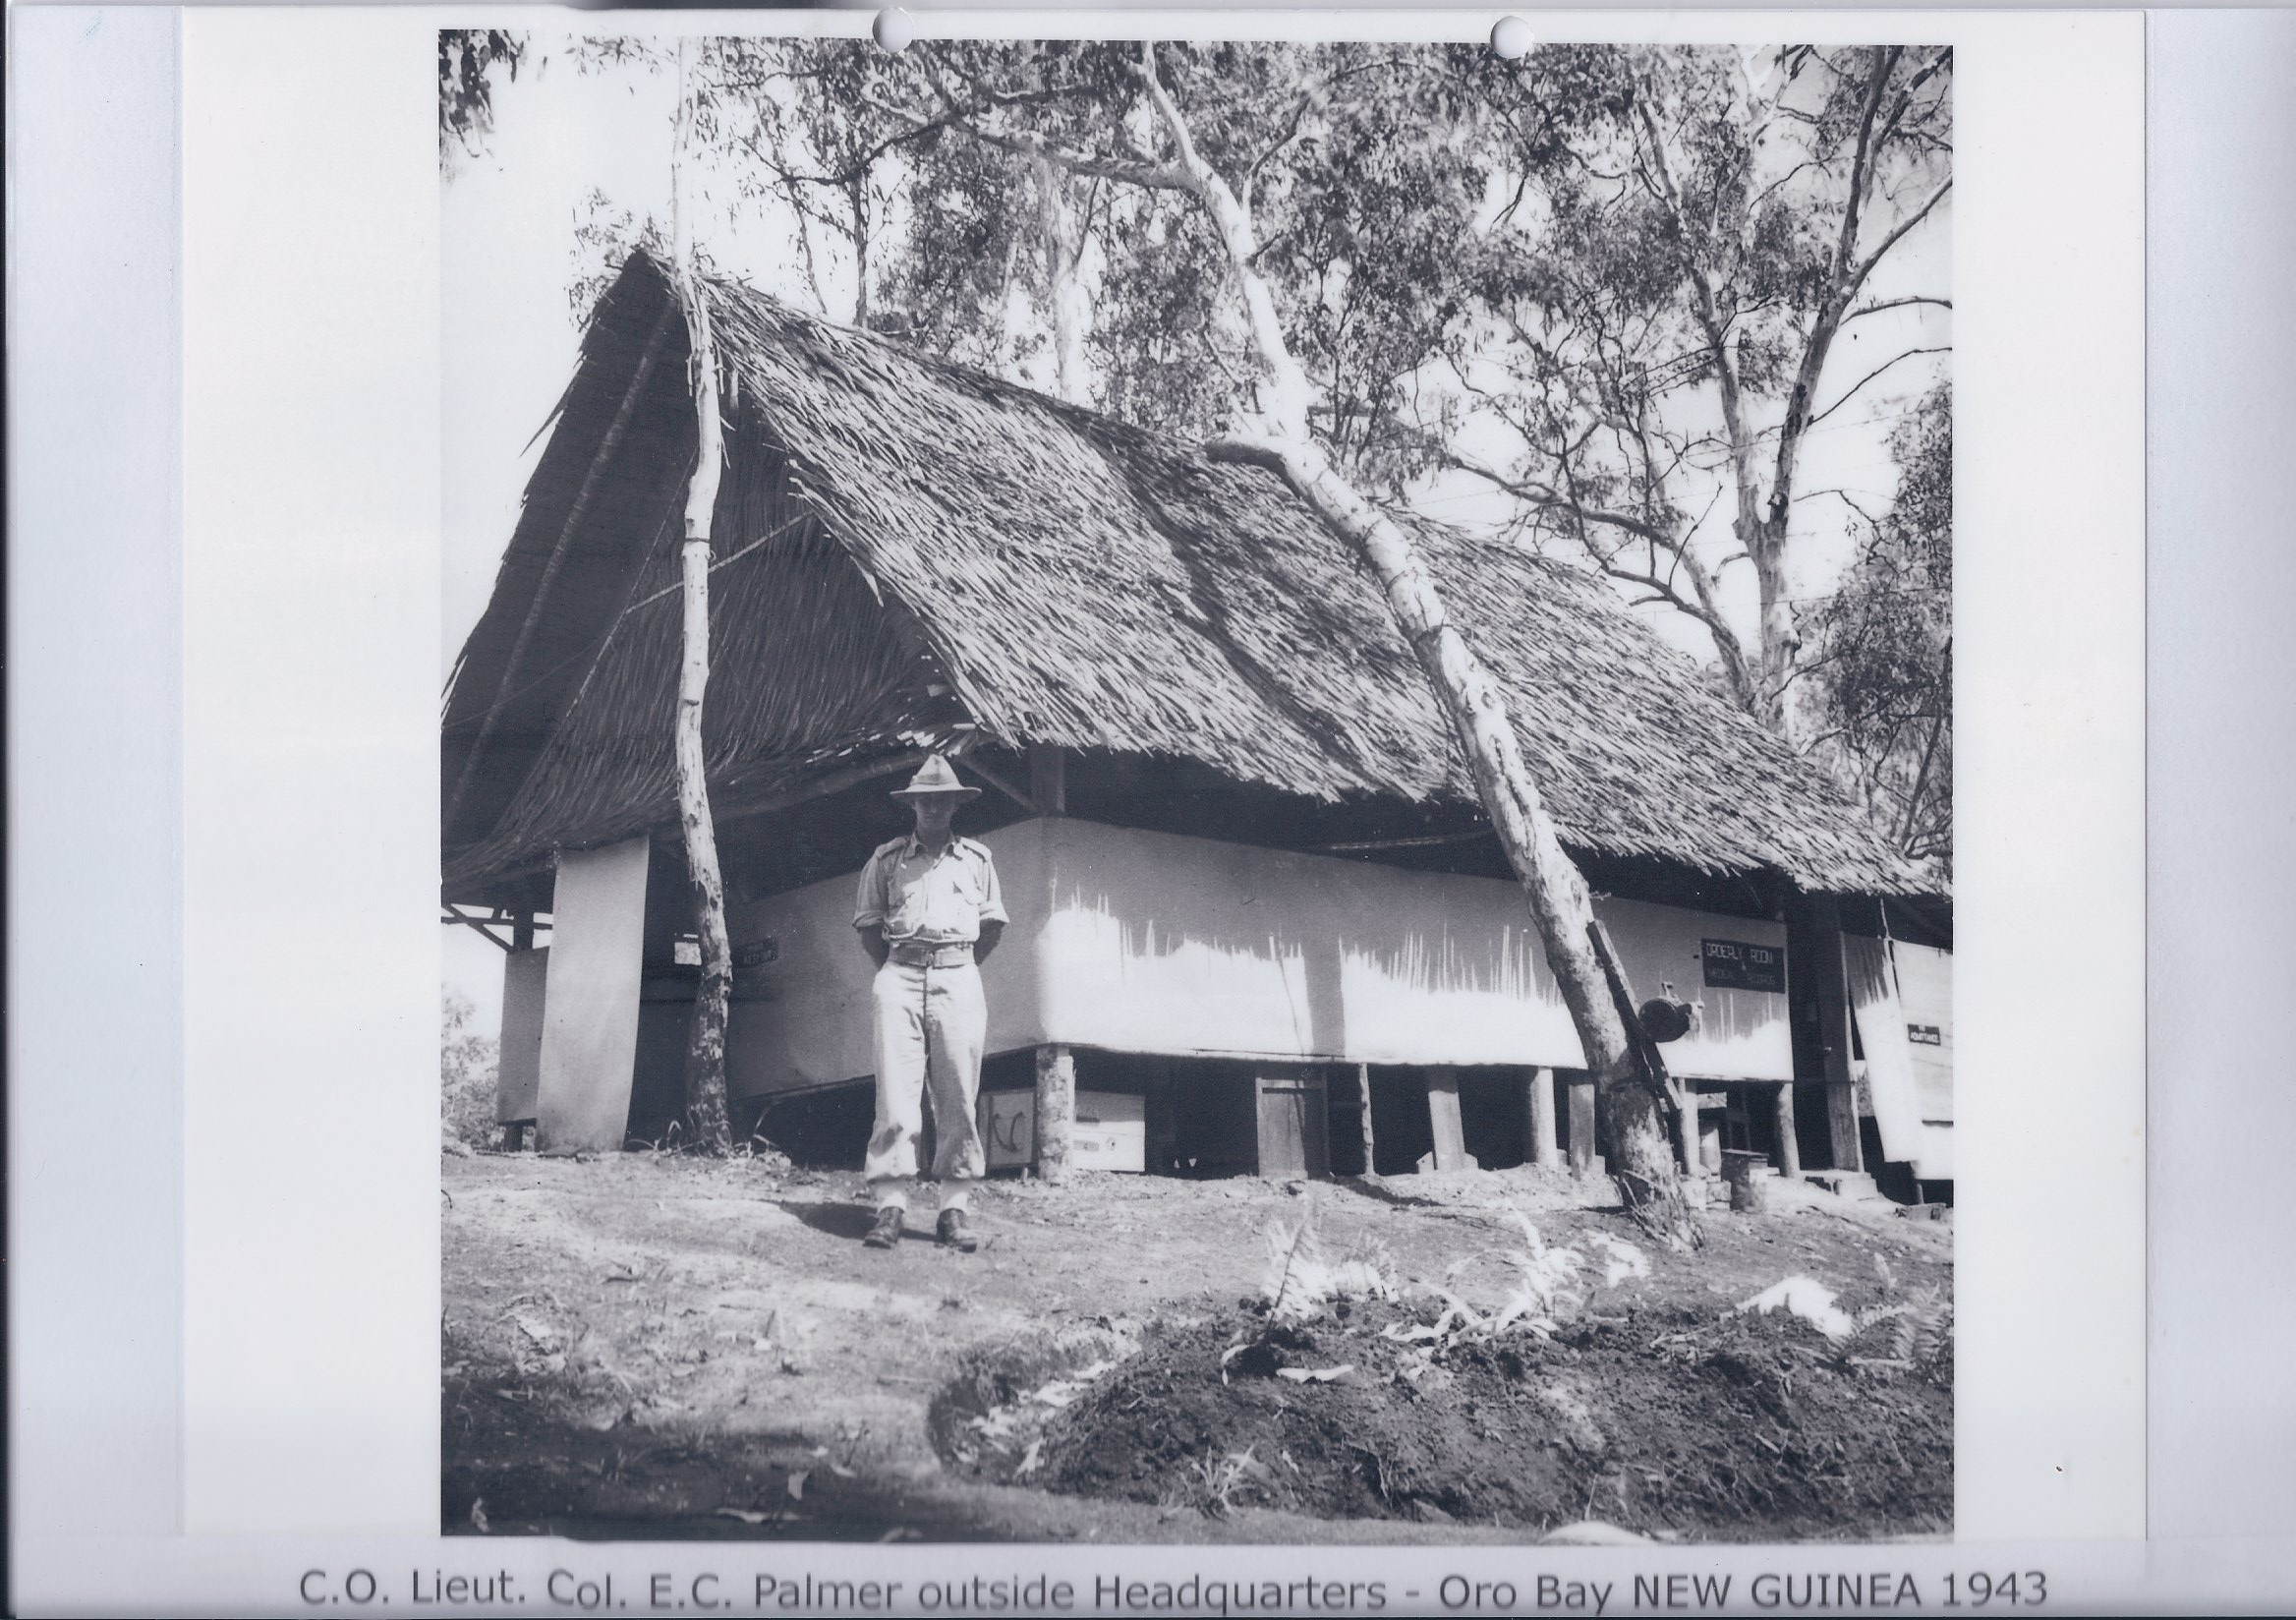 C.O. Lieut. Col. E.C. Palmer outside Headquarters - Oro Bay NEW GUINEA 1943